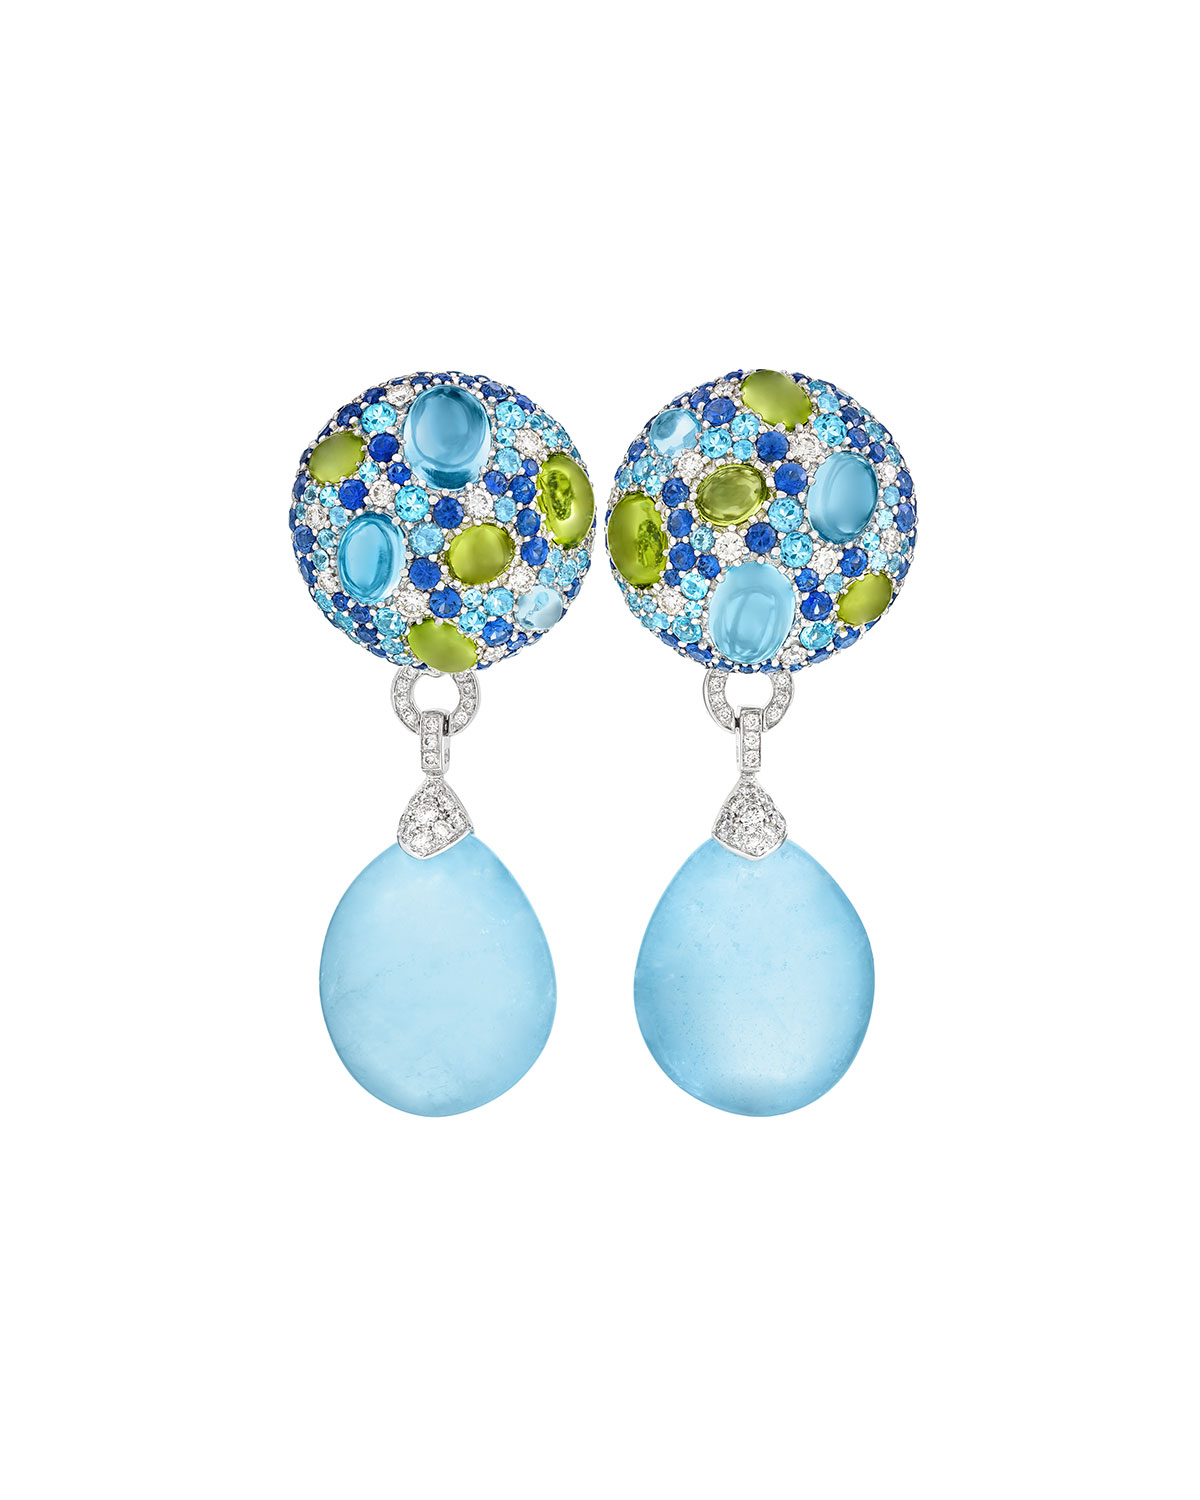 Margot McKinney Jewelry Carnivale Denim Blue Topaz Earrings with Diamonds rKj637x82E